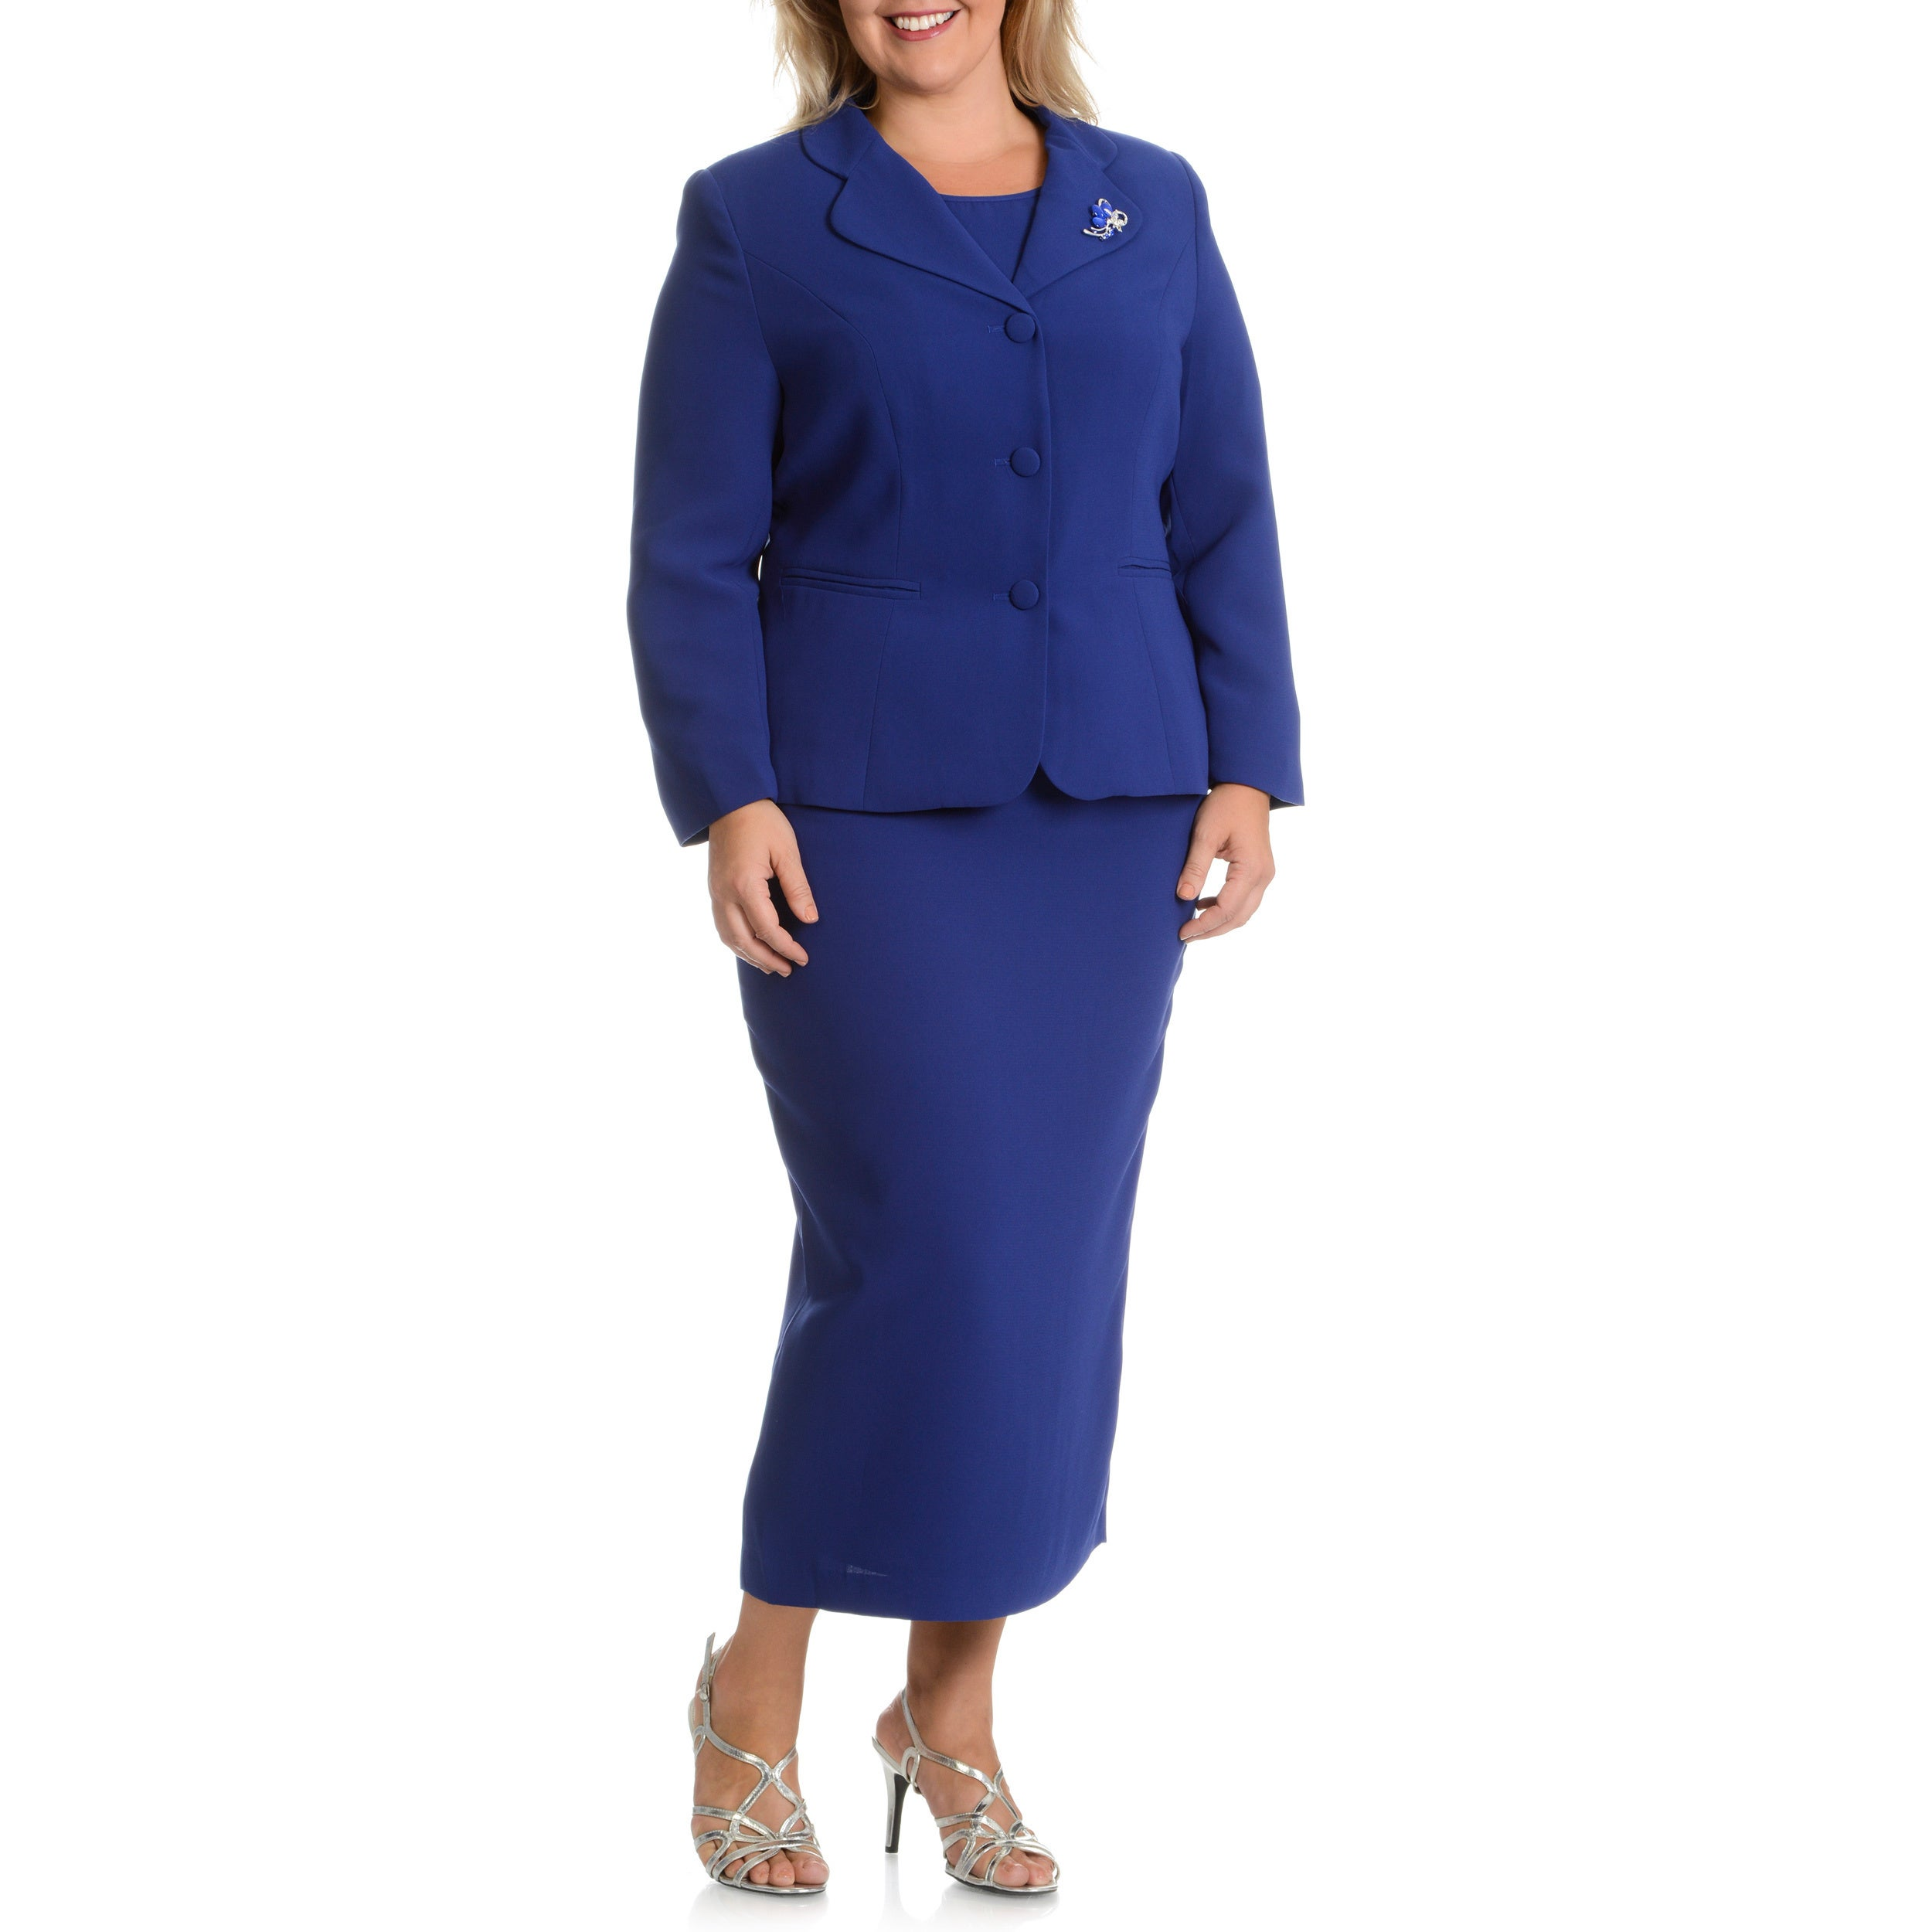 3a2962e5456 Shop Giovanna Signature Women's Plus Size Decorative Brooch 3-piece Skirt  Suit - Free Shipping Today - Overstock - 10654218